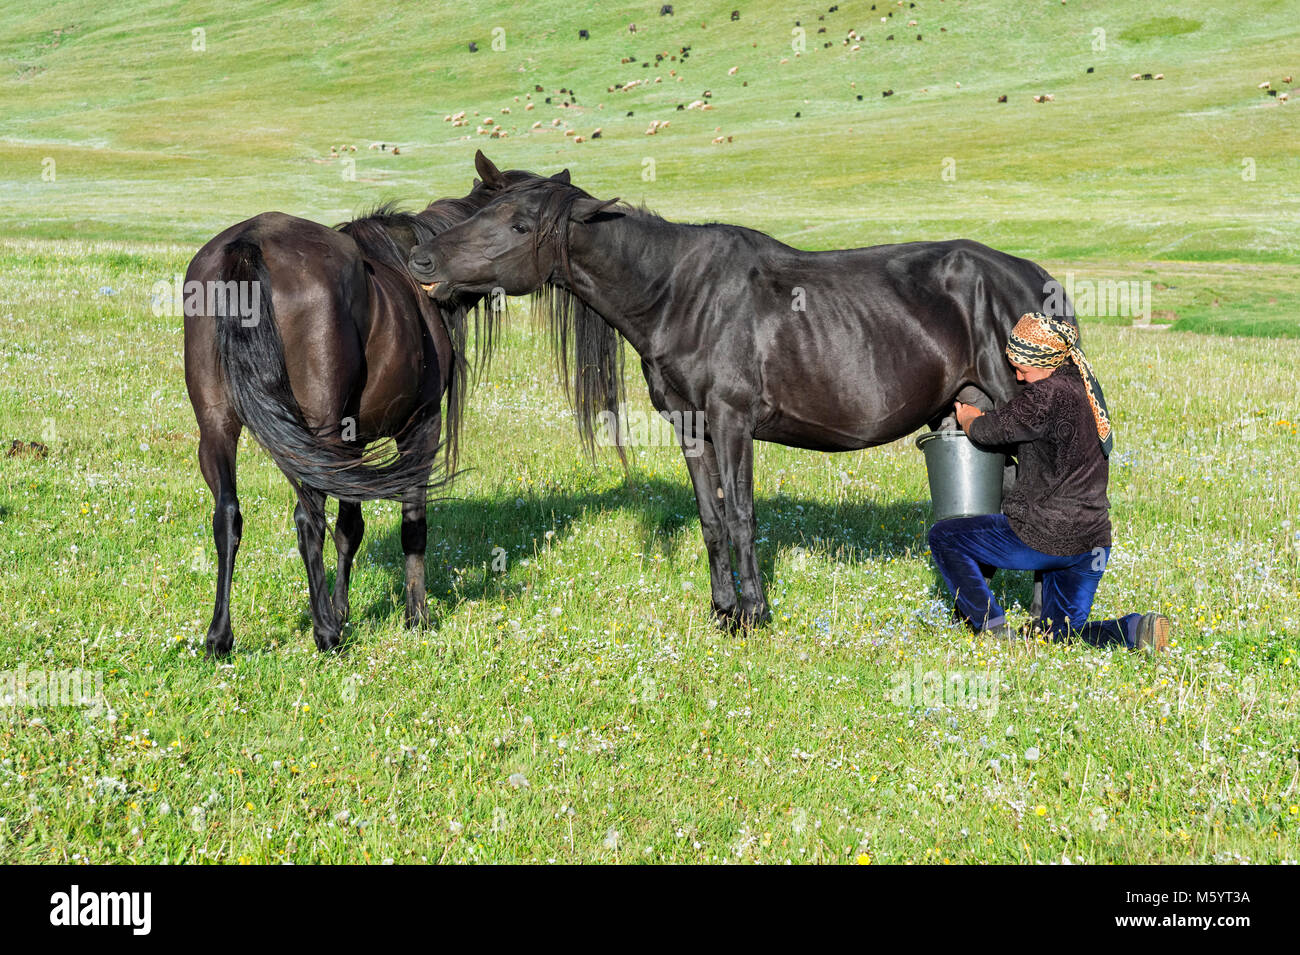 Kyrgyz woman milking a mare on mountain pastures, Song Kol Lake, Naryn province, Kyrgyzstan, Central Asia Stock Photo